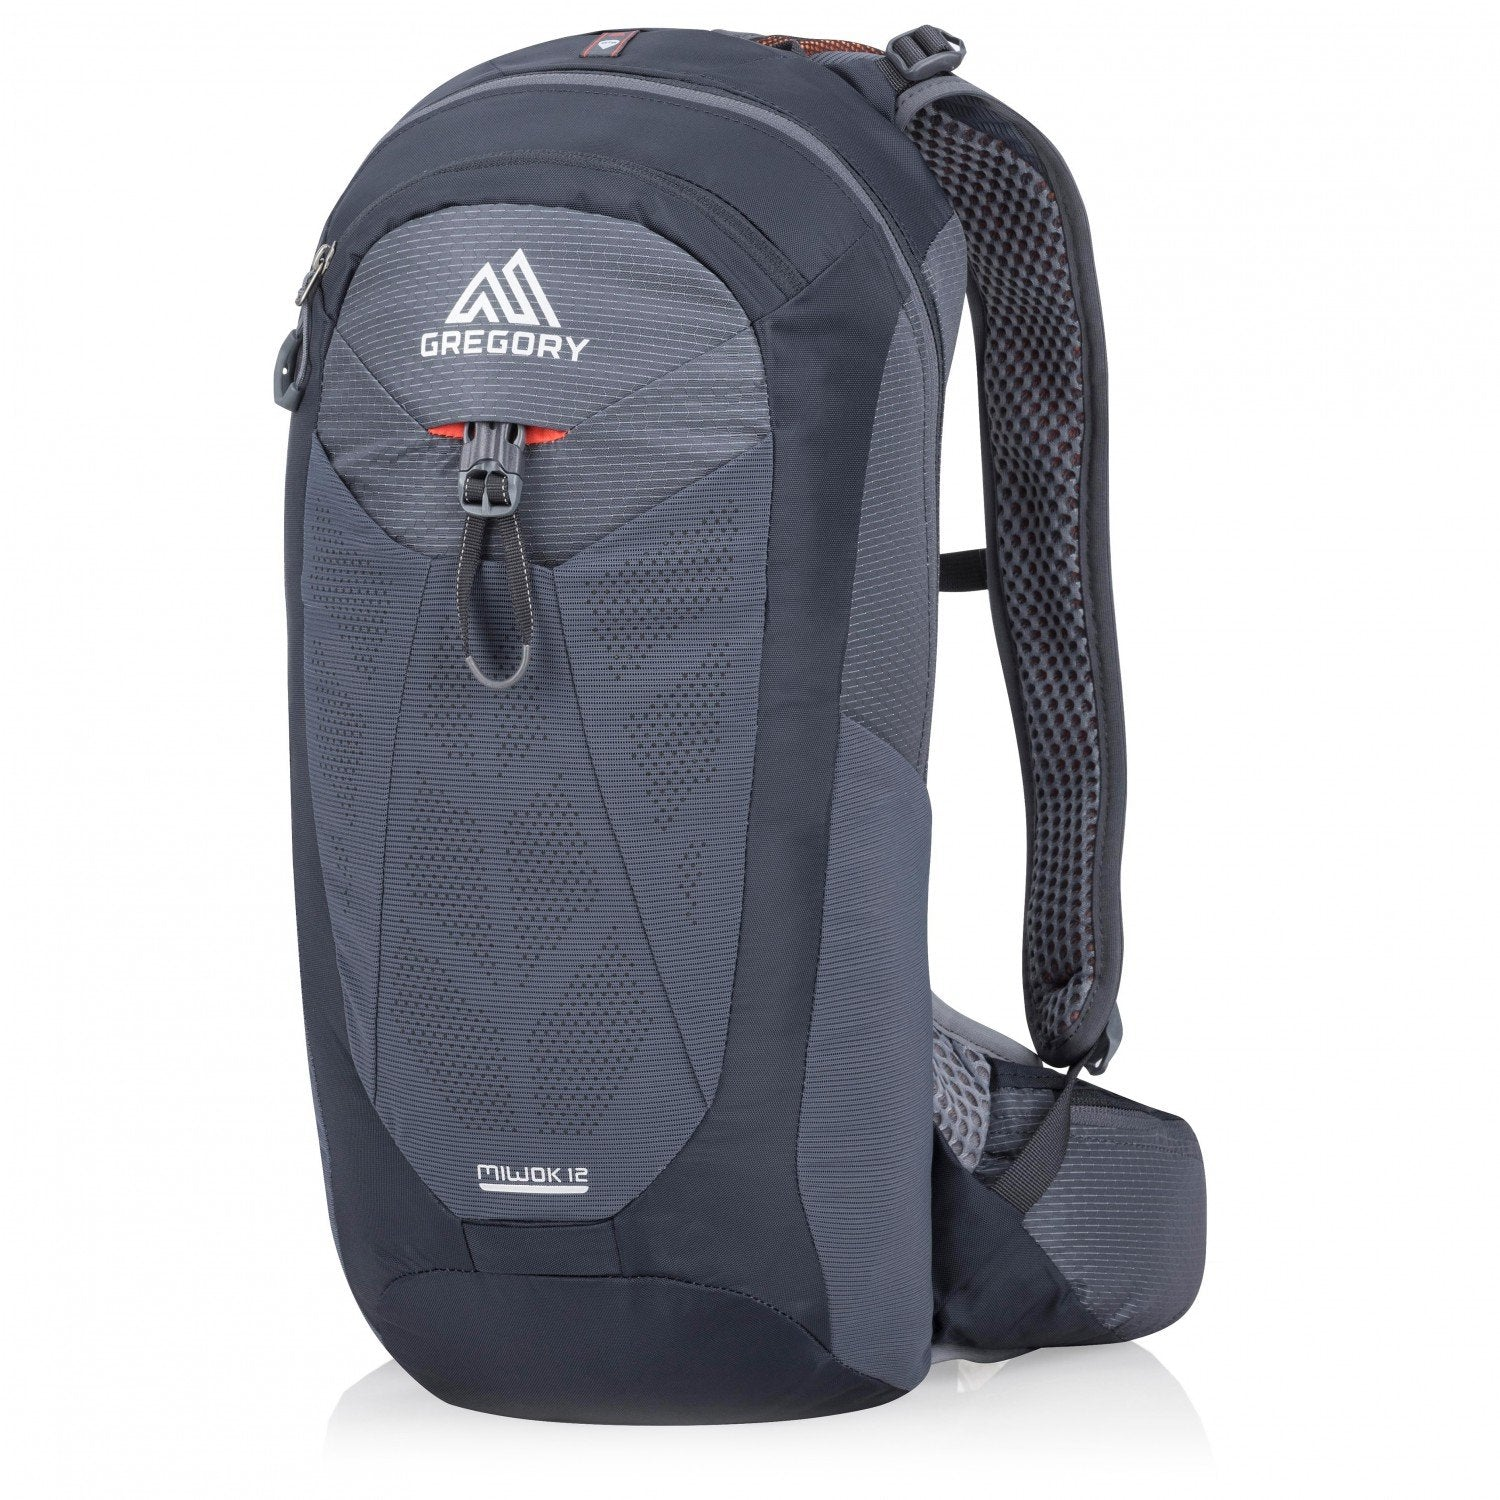 Gregory Miwok 12 backpack, front/side view in blue colours